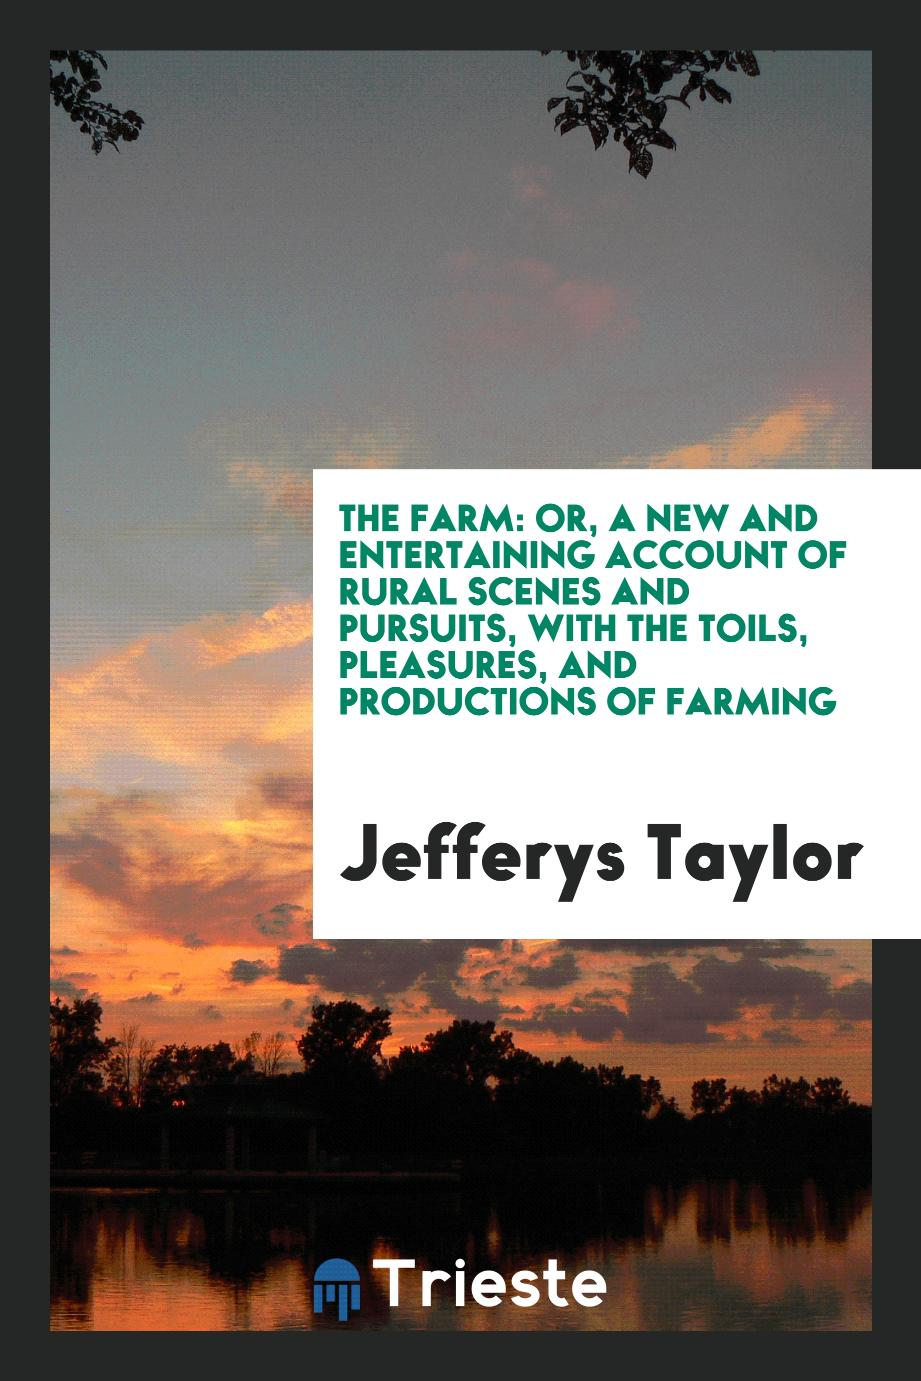 The Farm: Or, A New and Entertaining Account of Rural Scenes and Pursuits, with the Toils, Pleasures, and Productions of Farming